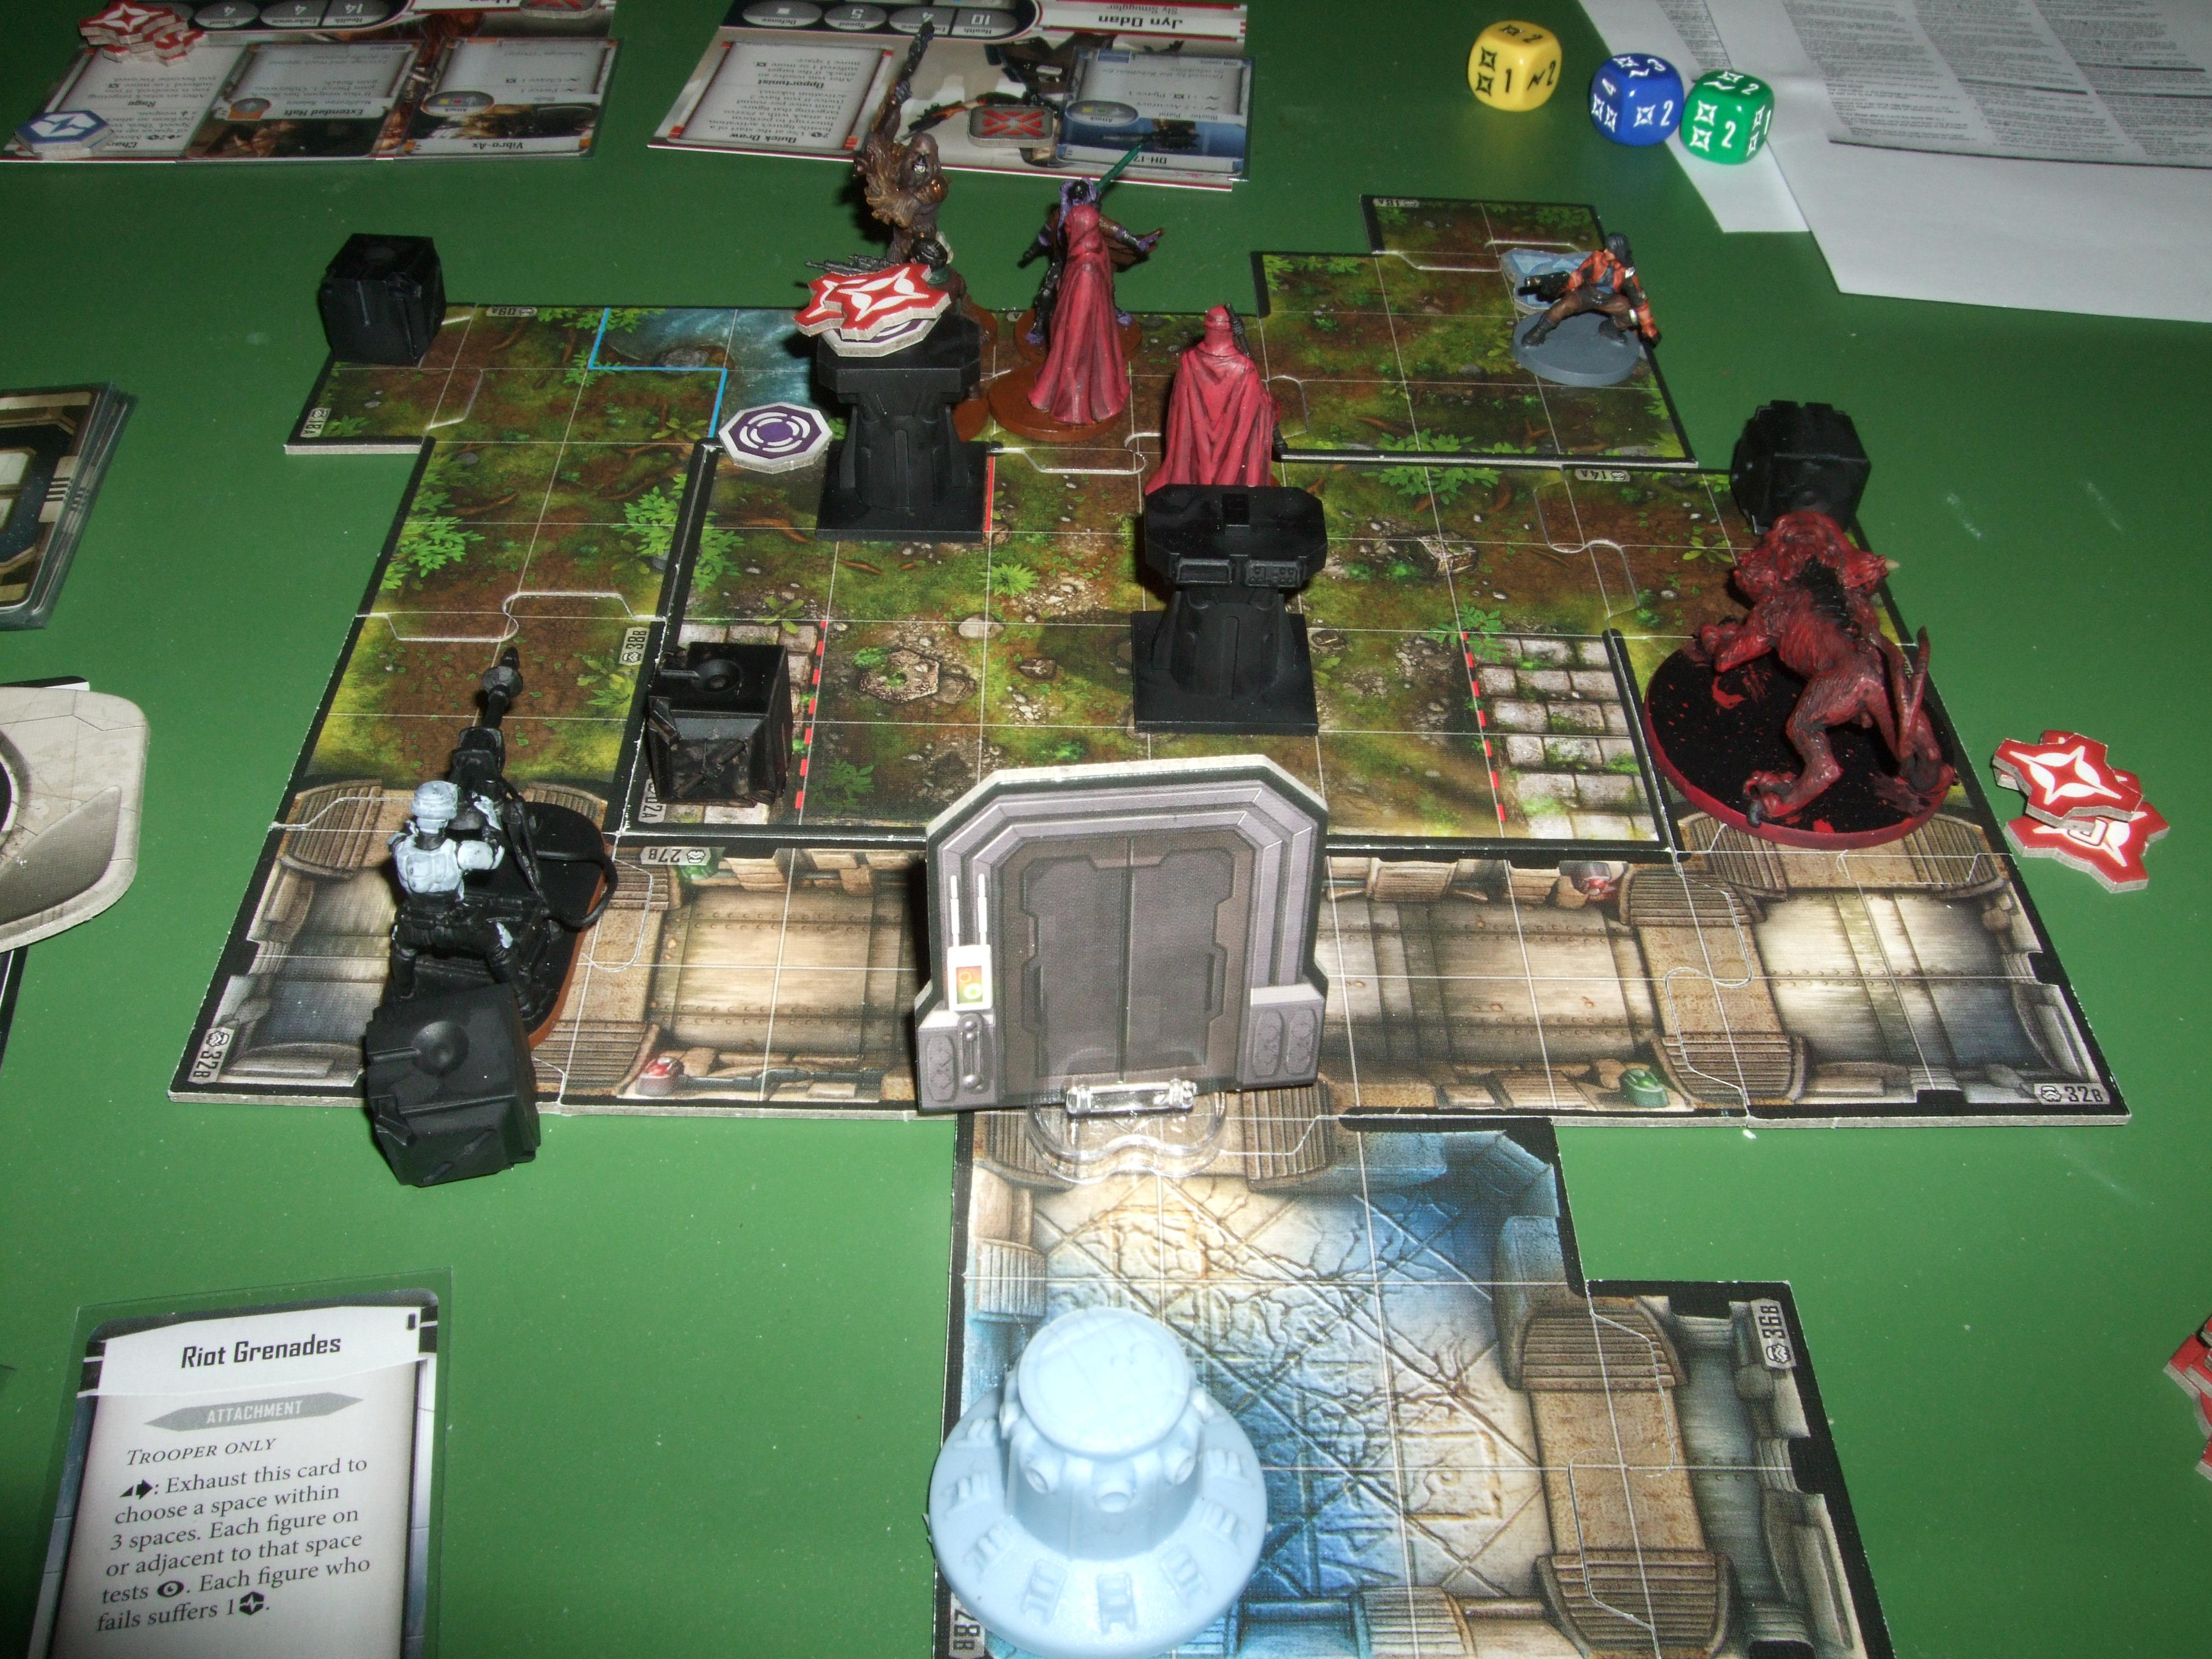 Battle Report, Campaign, Darth Vader, Imperial Assault, Jedi, Star Wars, Temptation, Wookiee